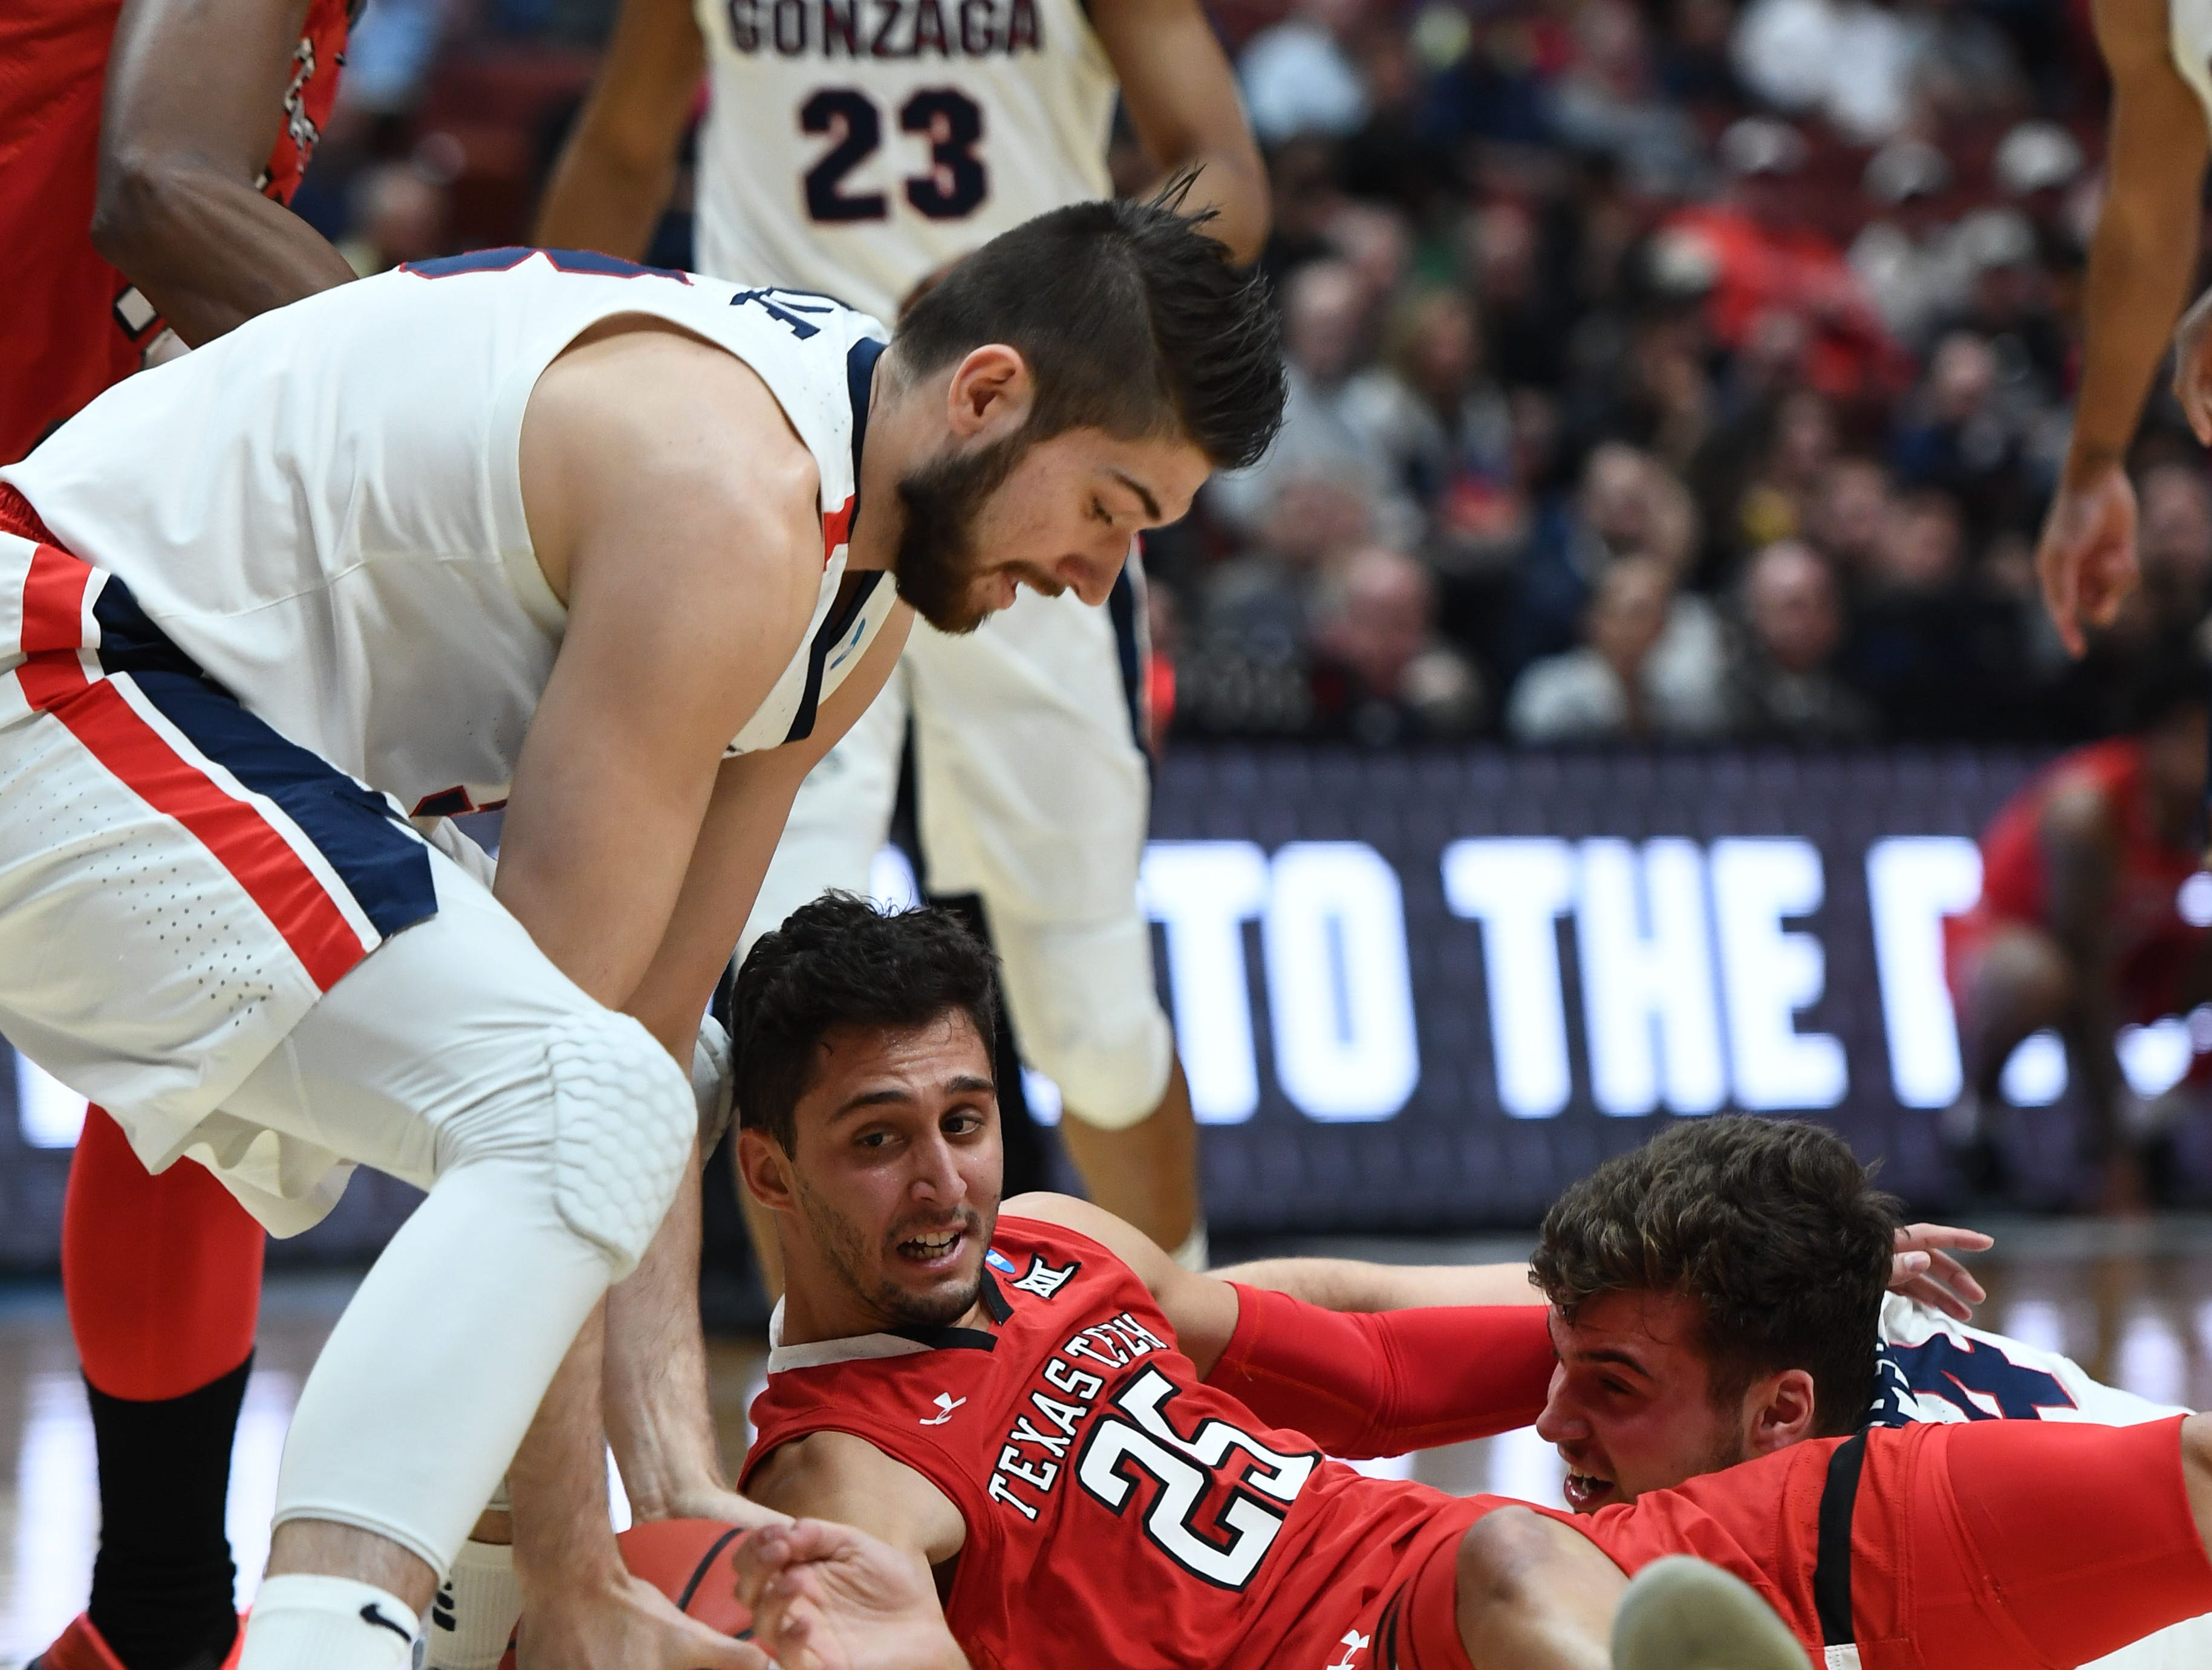 March 30, 2019; Anaheim, CA, USA; Gonzaga Bulldogs forward Killian Tillie (33) plays for the ball against Texas Tech Red Raiders guard Davide Moretti (25) during the first half in the championship game of the west regional of the 2019 NCAA Tournament at Honda Center. Mandatory Credit: Robert Hanashiro-USA TODAY Sports